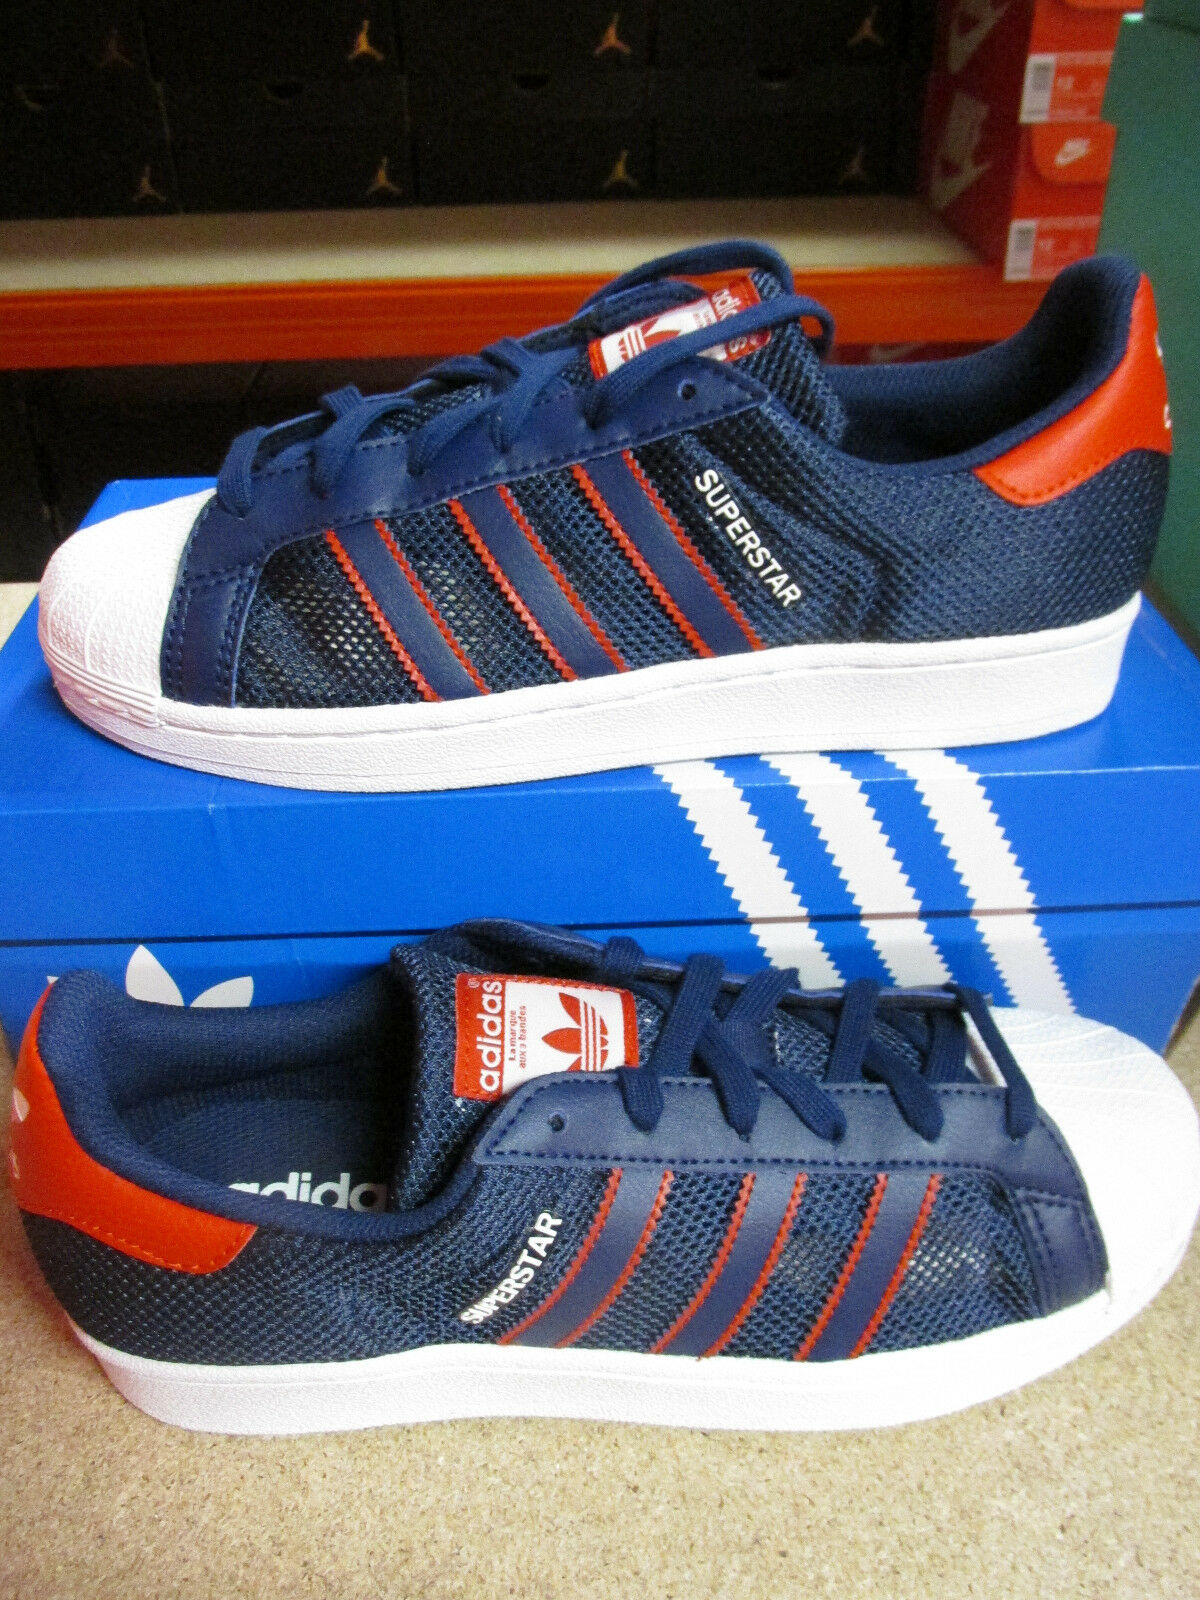 Adidas Originals Superstar Mens BB5395 Trainers Sneakers Shoes